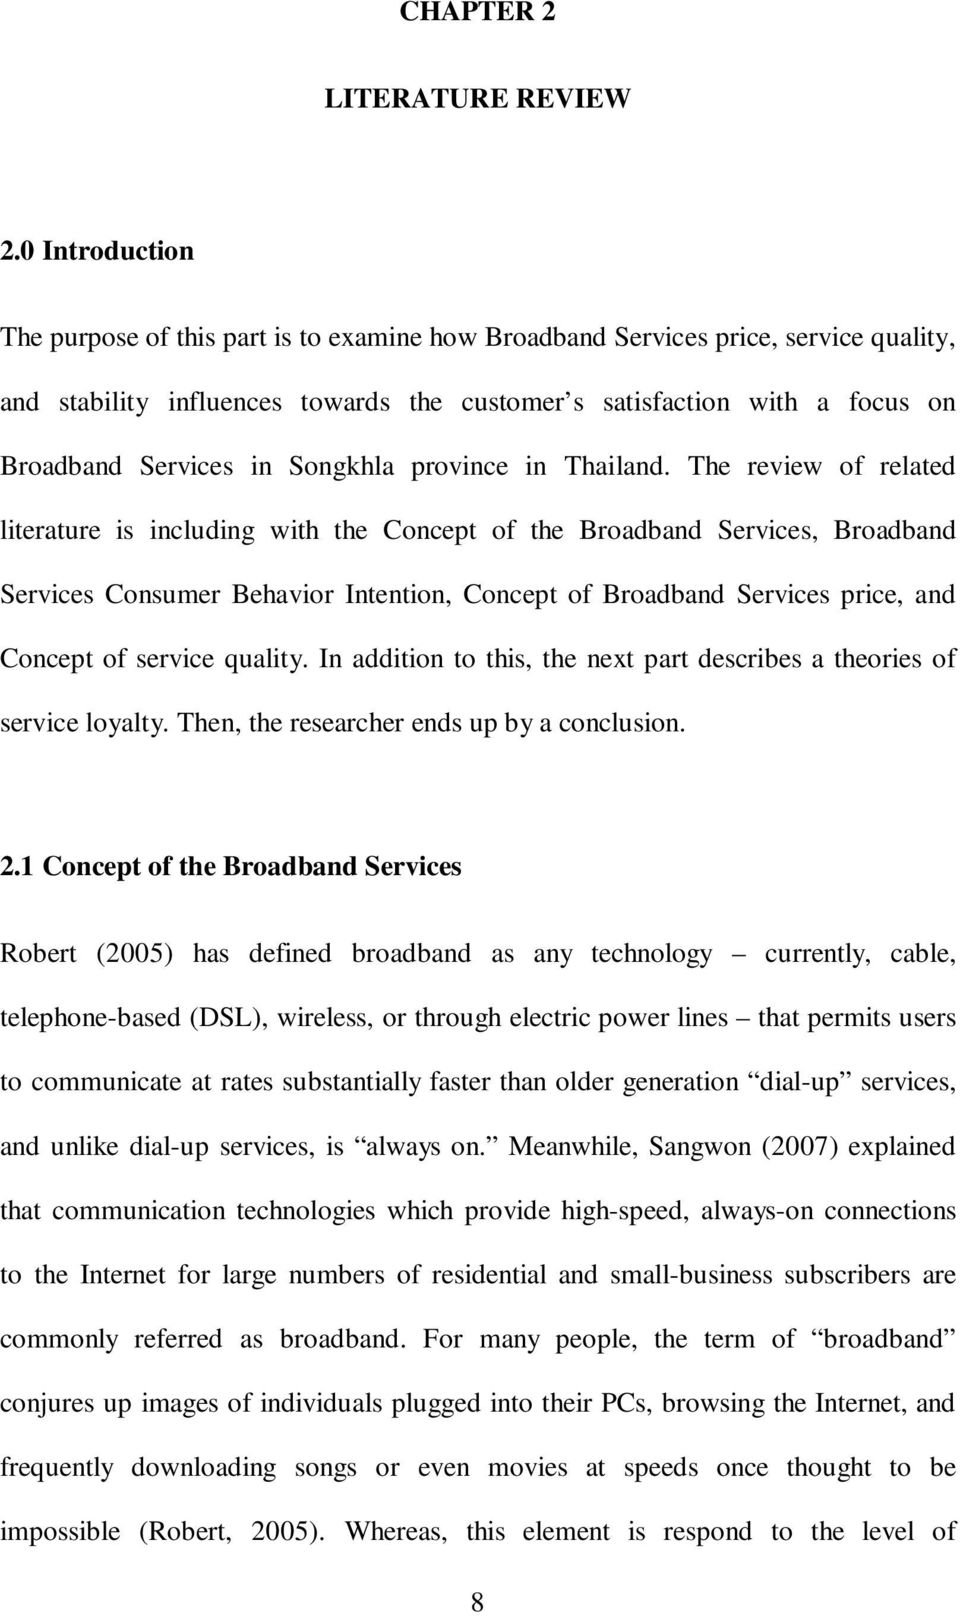 literature review on customer satisfaction on telecommunication services Critical factors of customer satisfaction in ethiopian service common in the selected service sectors like telecom literature review service interaction.